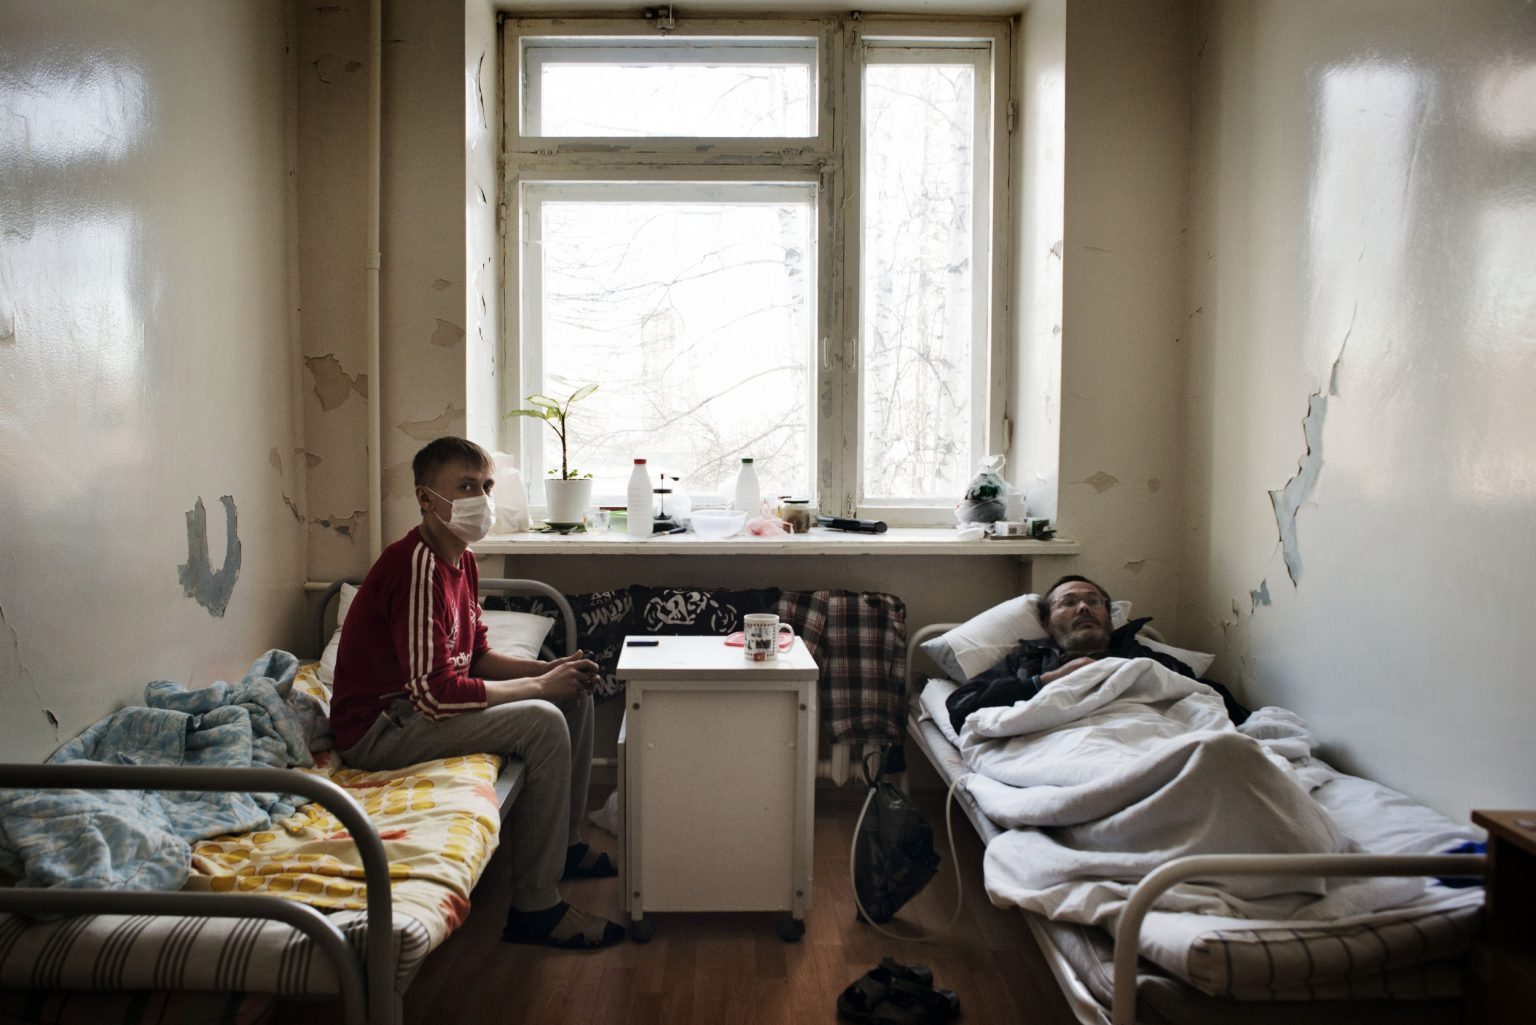 Yekaterinburg, Russia, March 2016 - Andrey affected with tuberculosis lies in a hospital bed. The treatment he is undergoing is affecting seriously his liver already damaged from a long use of Krokodil. >< Yekaterinburg, Russia, marzo 2016 - Andrey malato di tubercolosi è ricoverato in ospedale da oltre due mesi. La cura che sta facendo sta indebolendo il fegato già debilitato dall'uso di Krokodil.